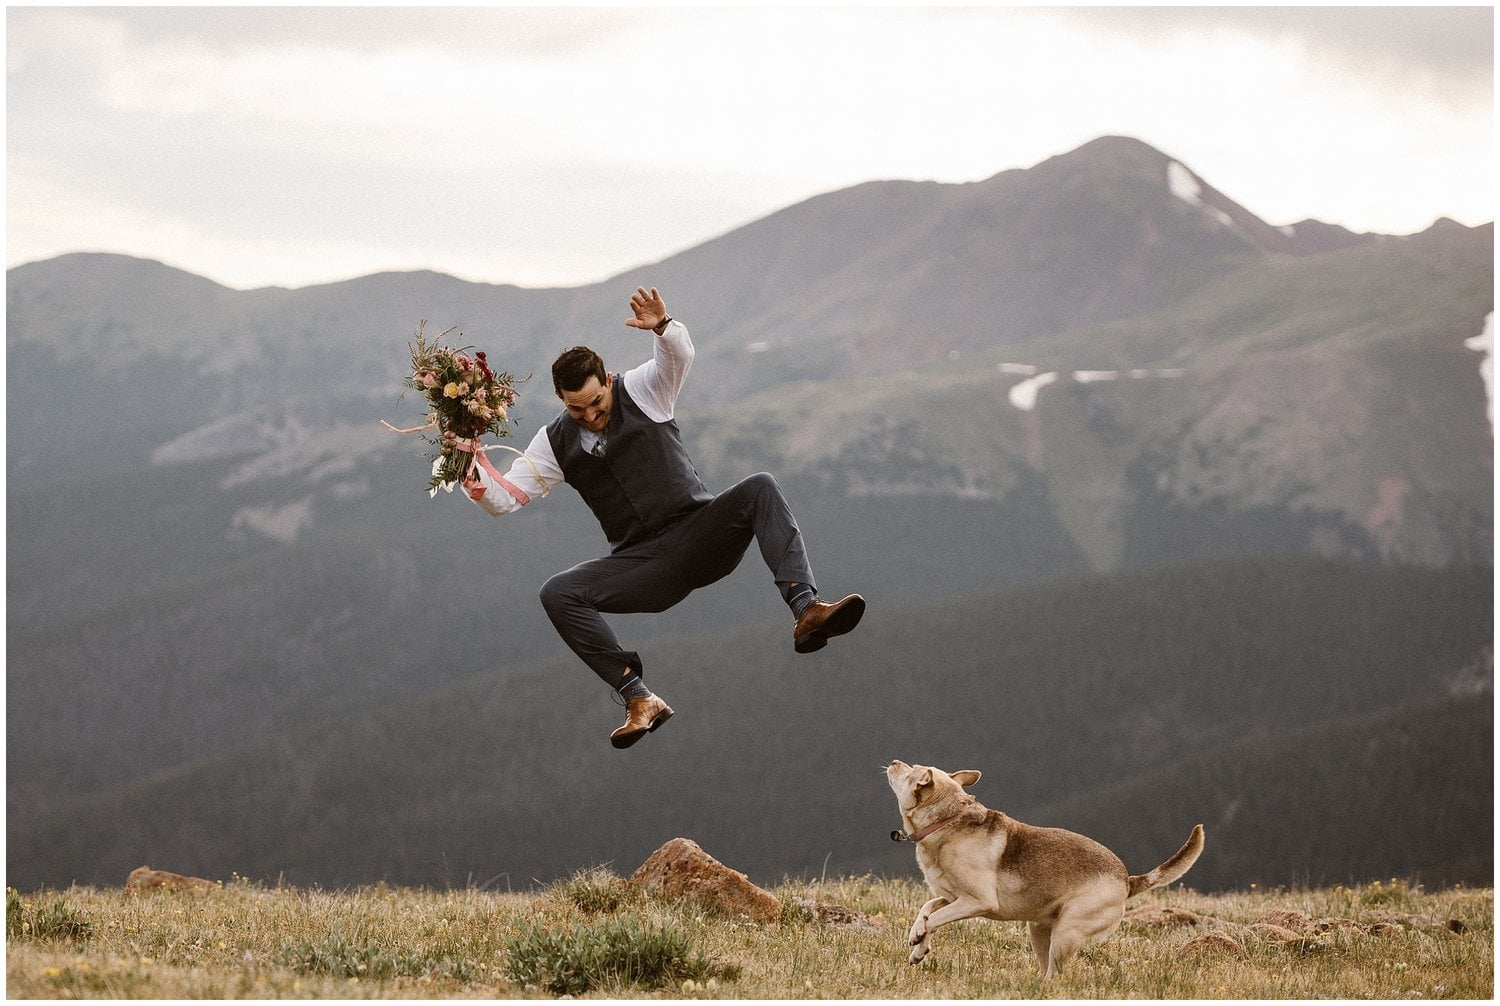 A groom jumps in mid-air while a dog runs on the ground underneath him.